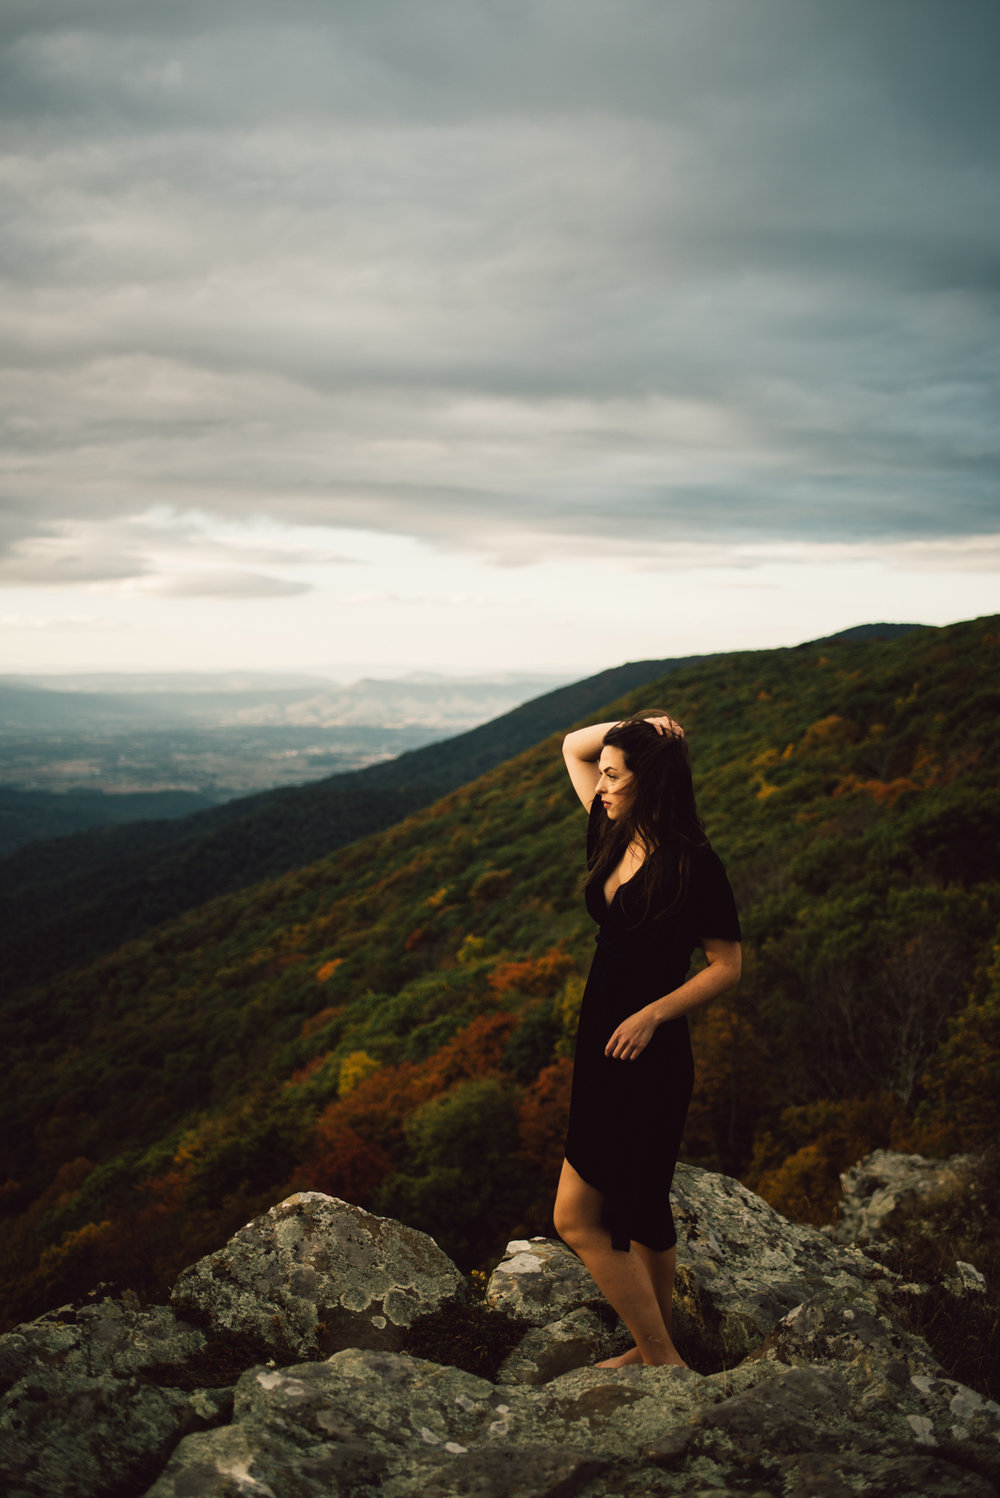 Megan_Shenandoah_National_Park_Windy_Romantic_Portraits_128.JPG